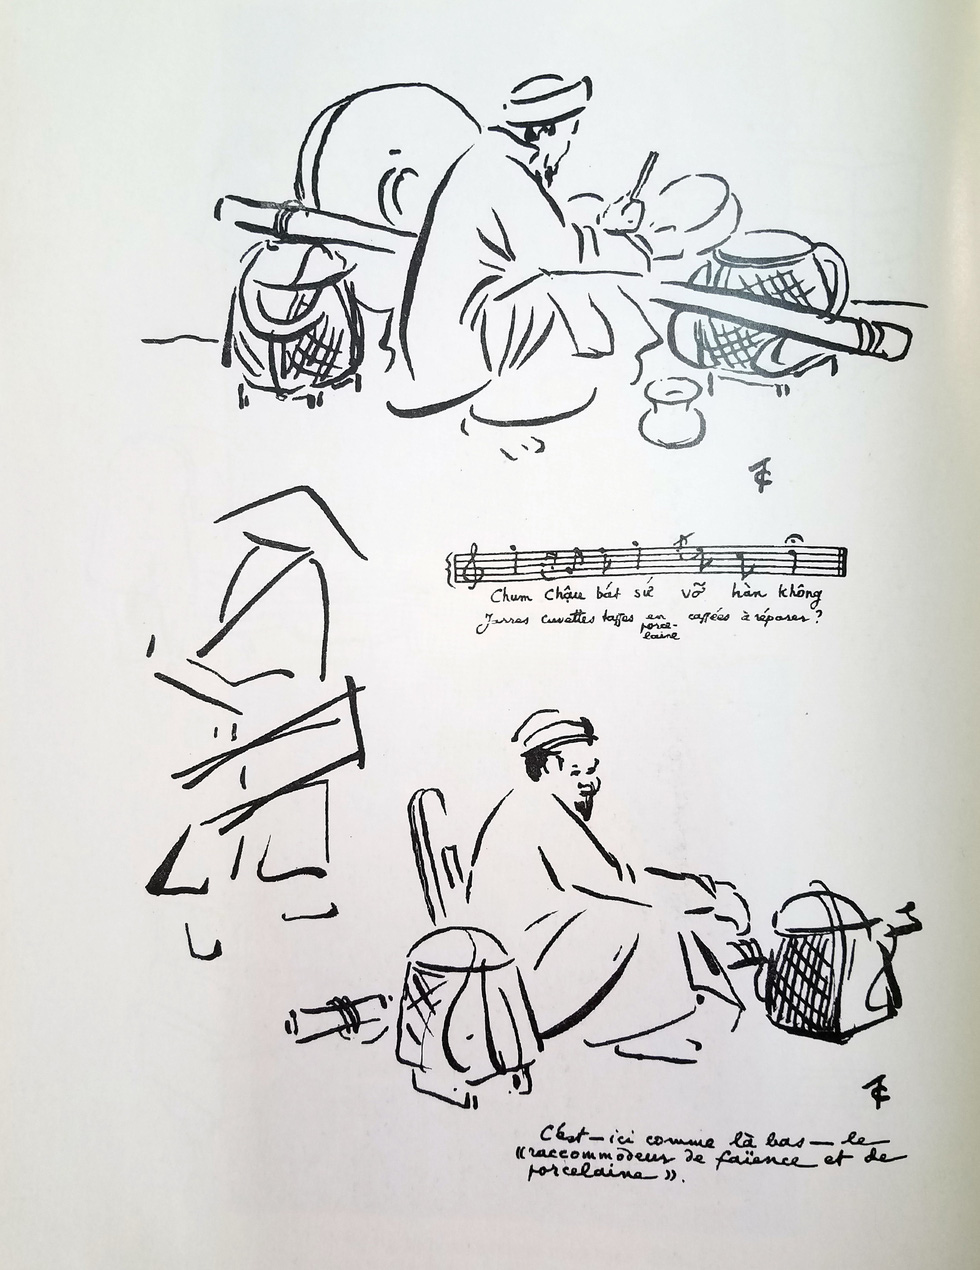 A peddler's cry reveals that he is a household utensil fixer, with the trade rarely practiced in modern Hanoi, Vietnam.